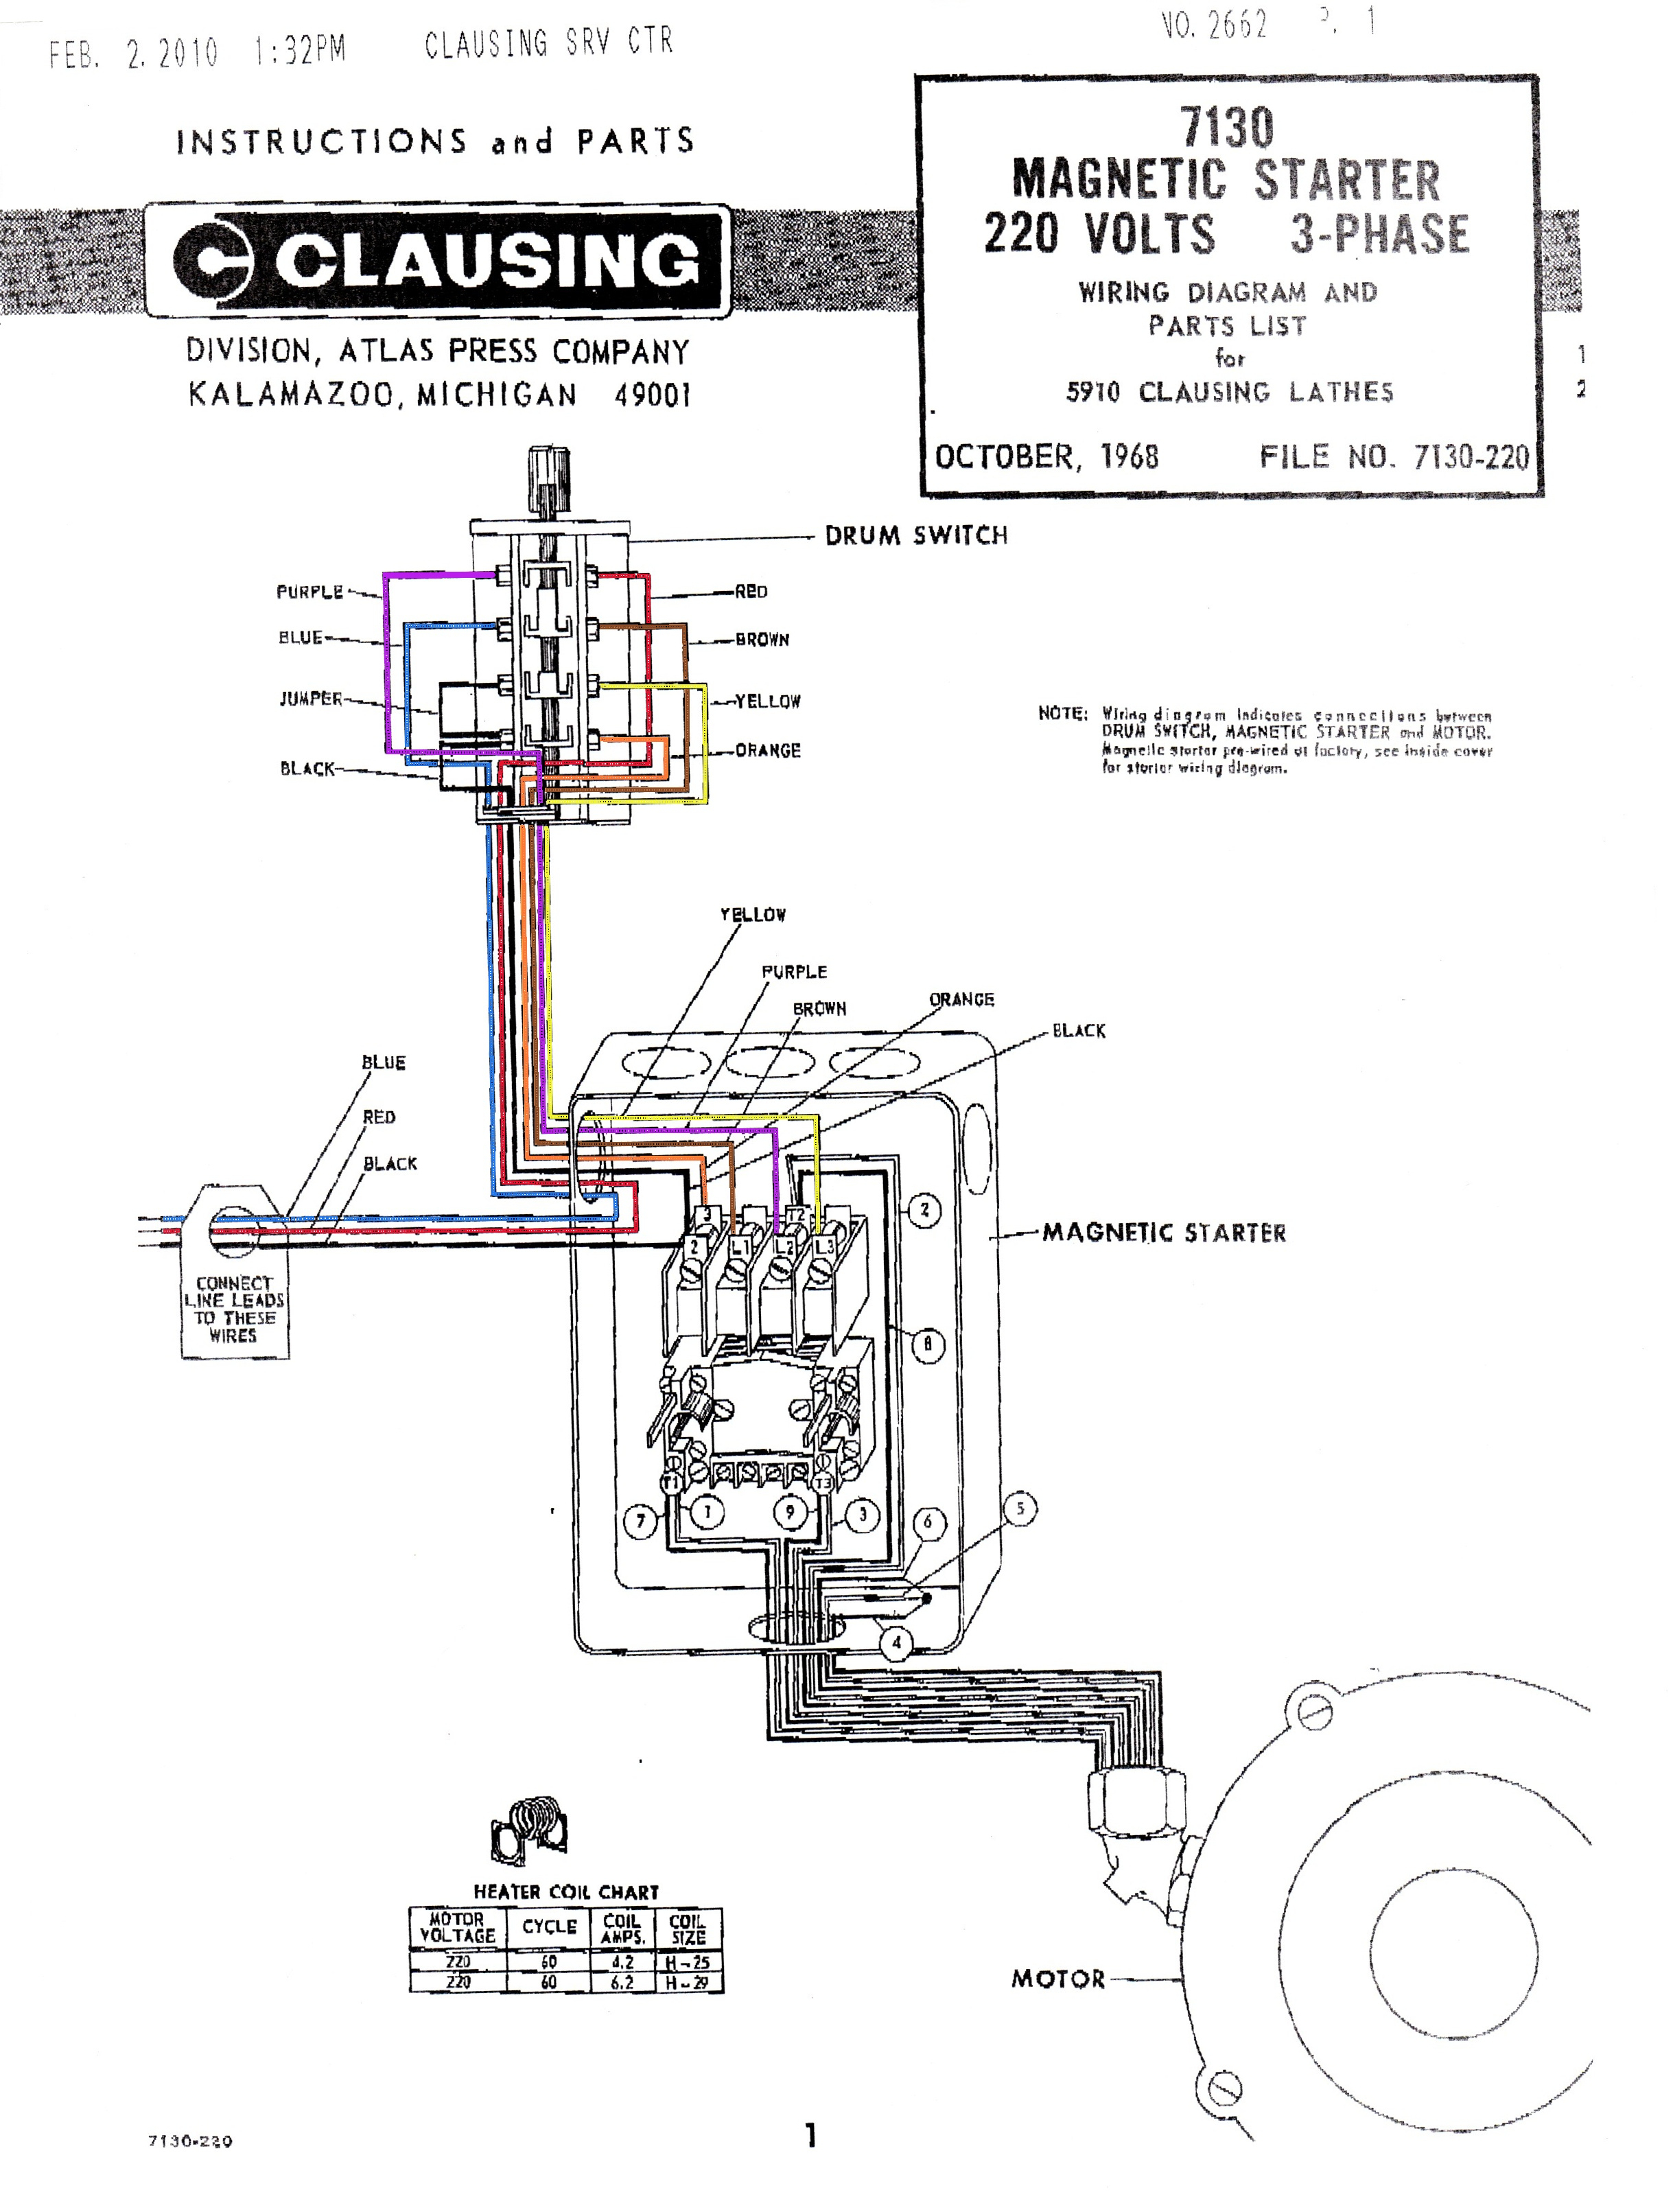 Magnetic Starter Wiring Diagram For 220 | Wiring Diagram - 3 Phase Motor Starter Wiring Diagram